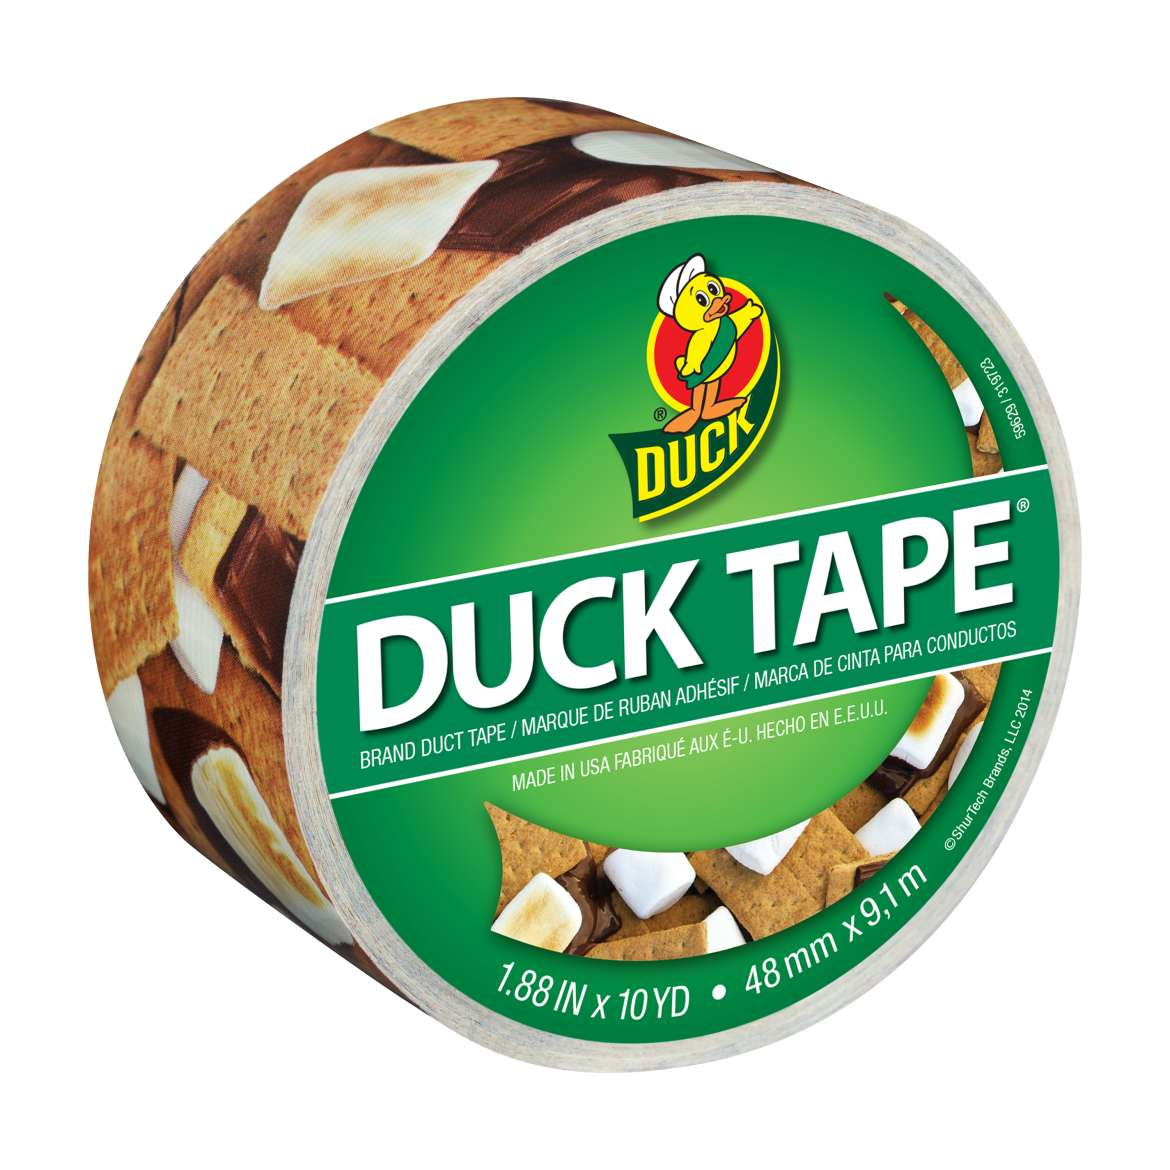 Printed Duck Tape® Brand Duct Tape - S'mores Please, 1.88 in. x 10 yd. Image